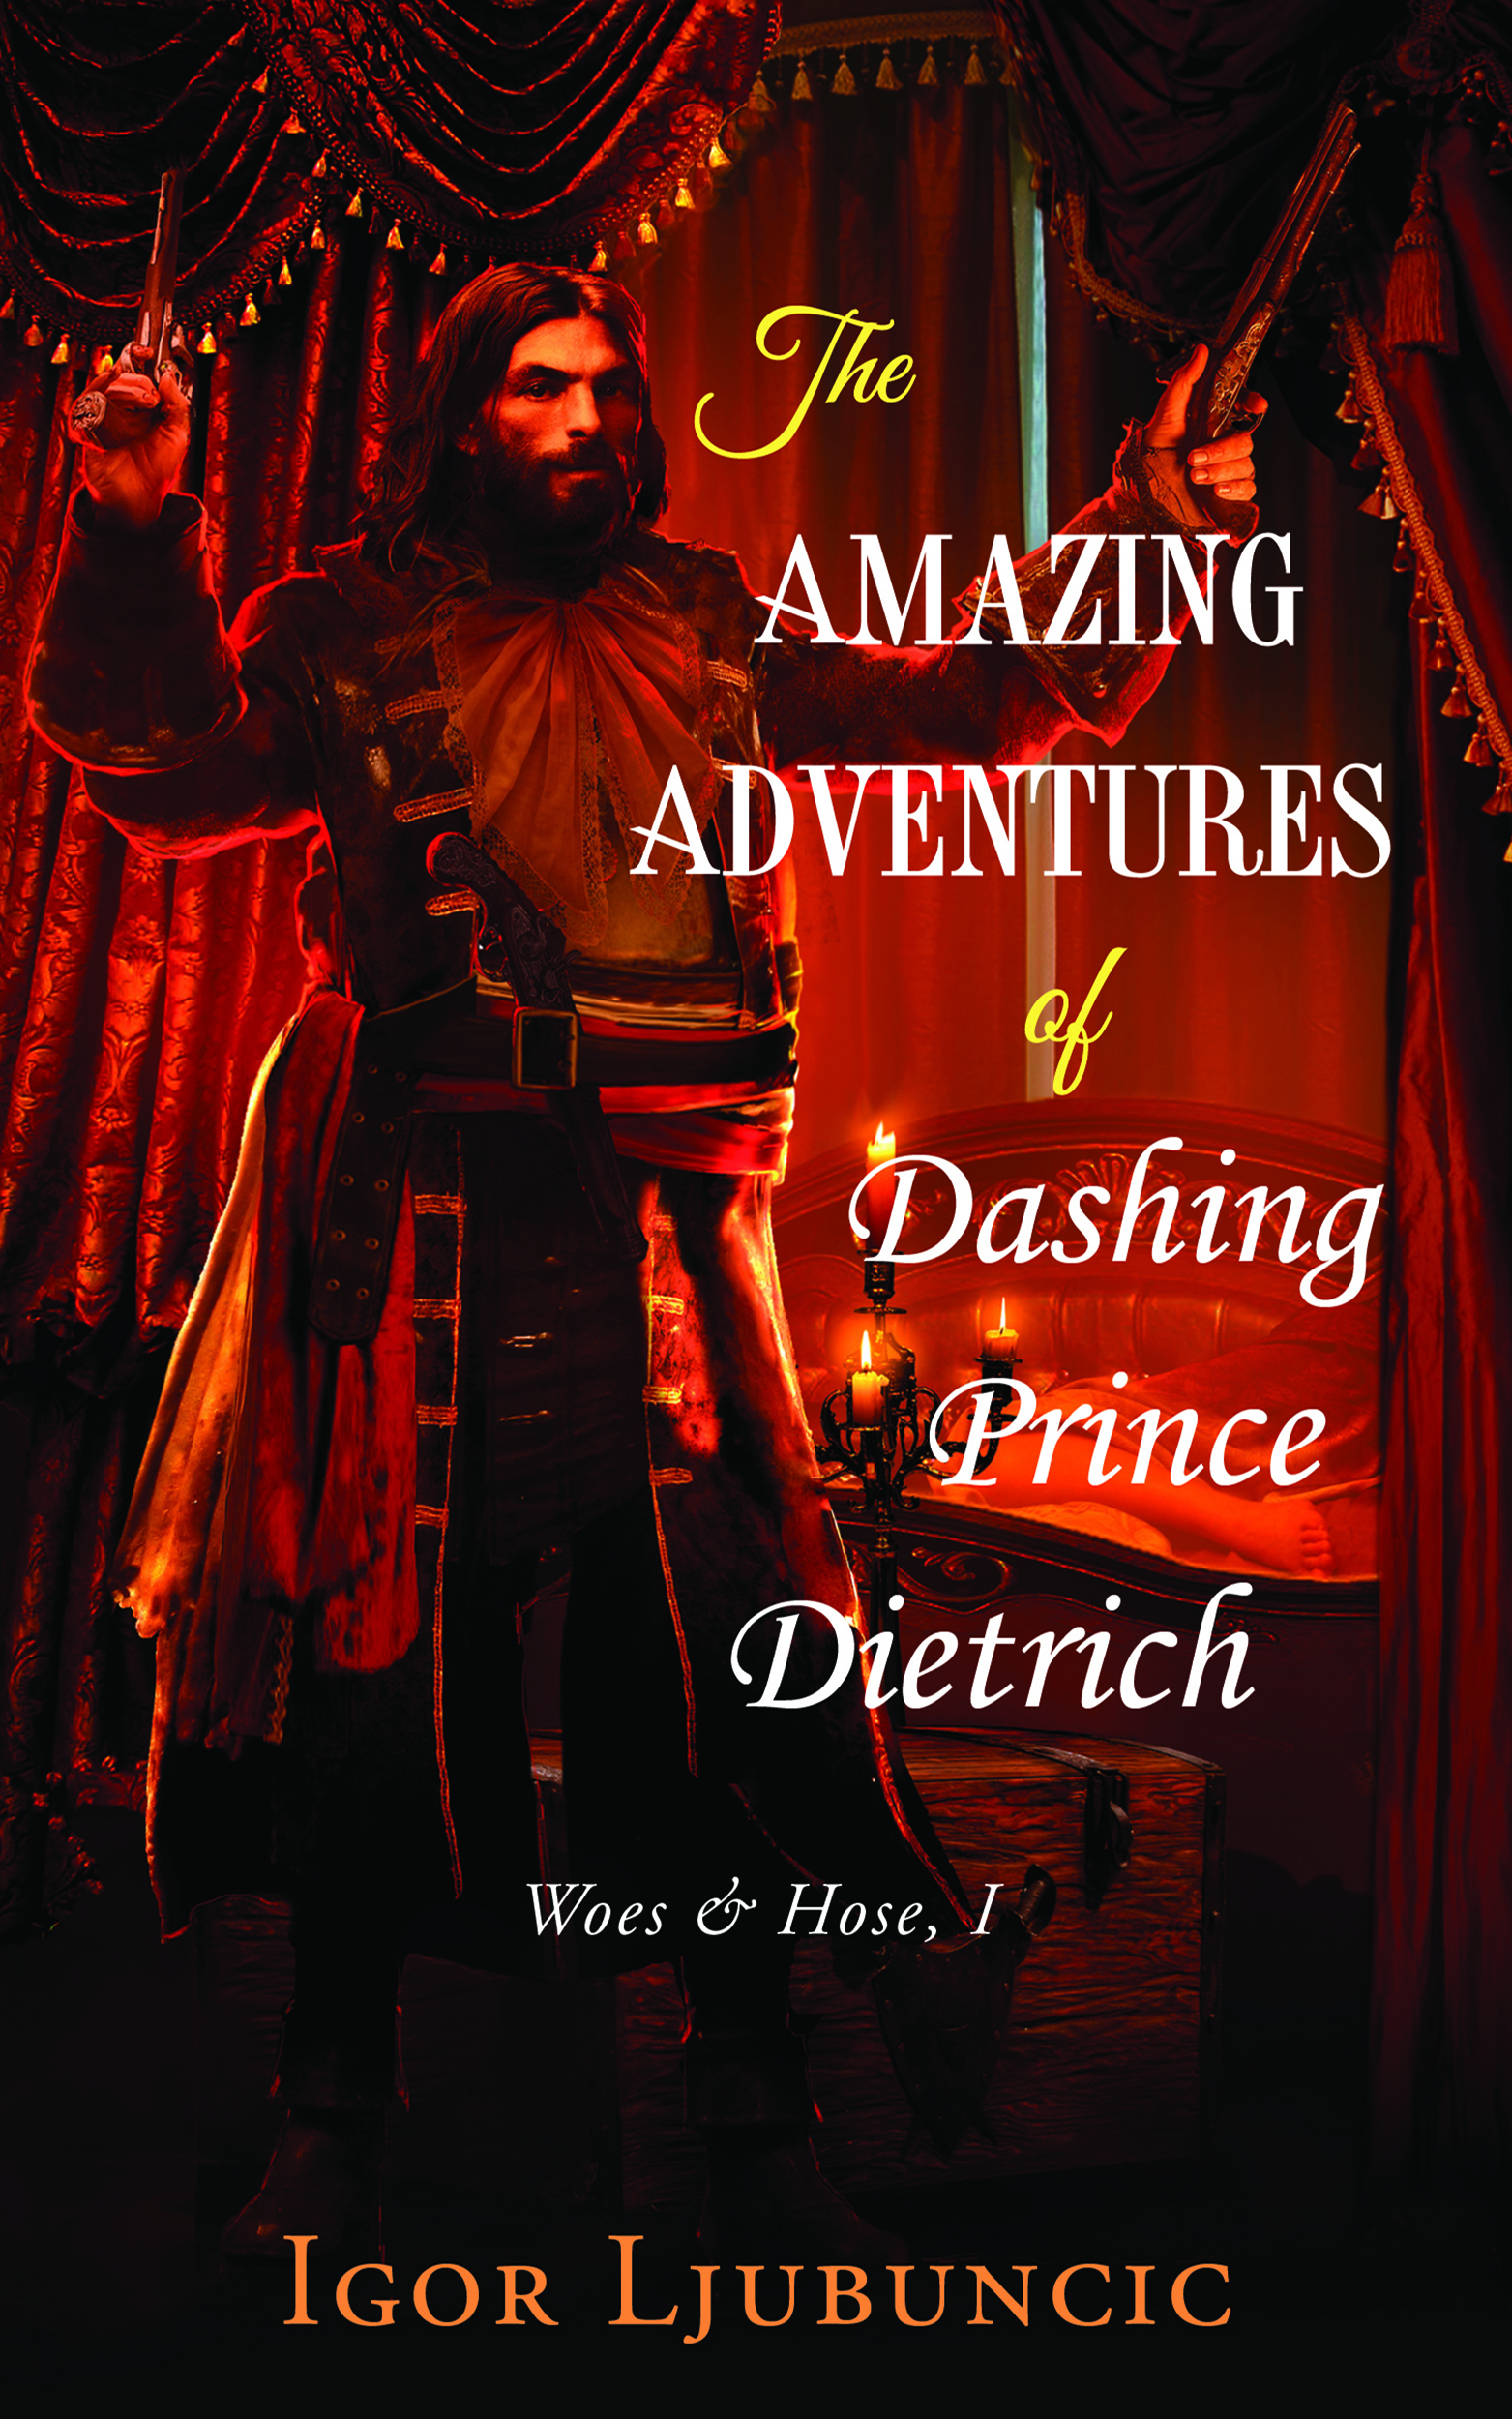 The Amazing Adventures of Dashing Prince Dietrich